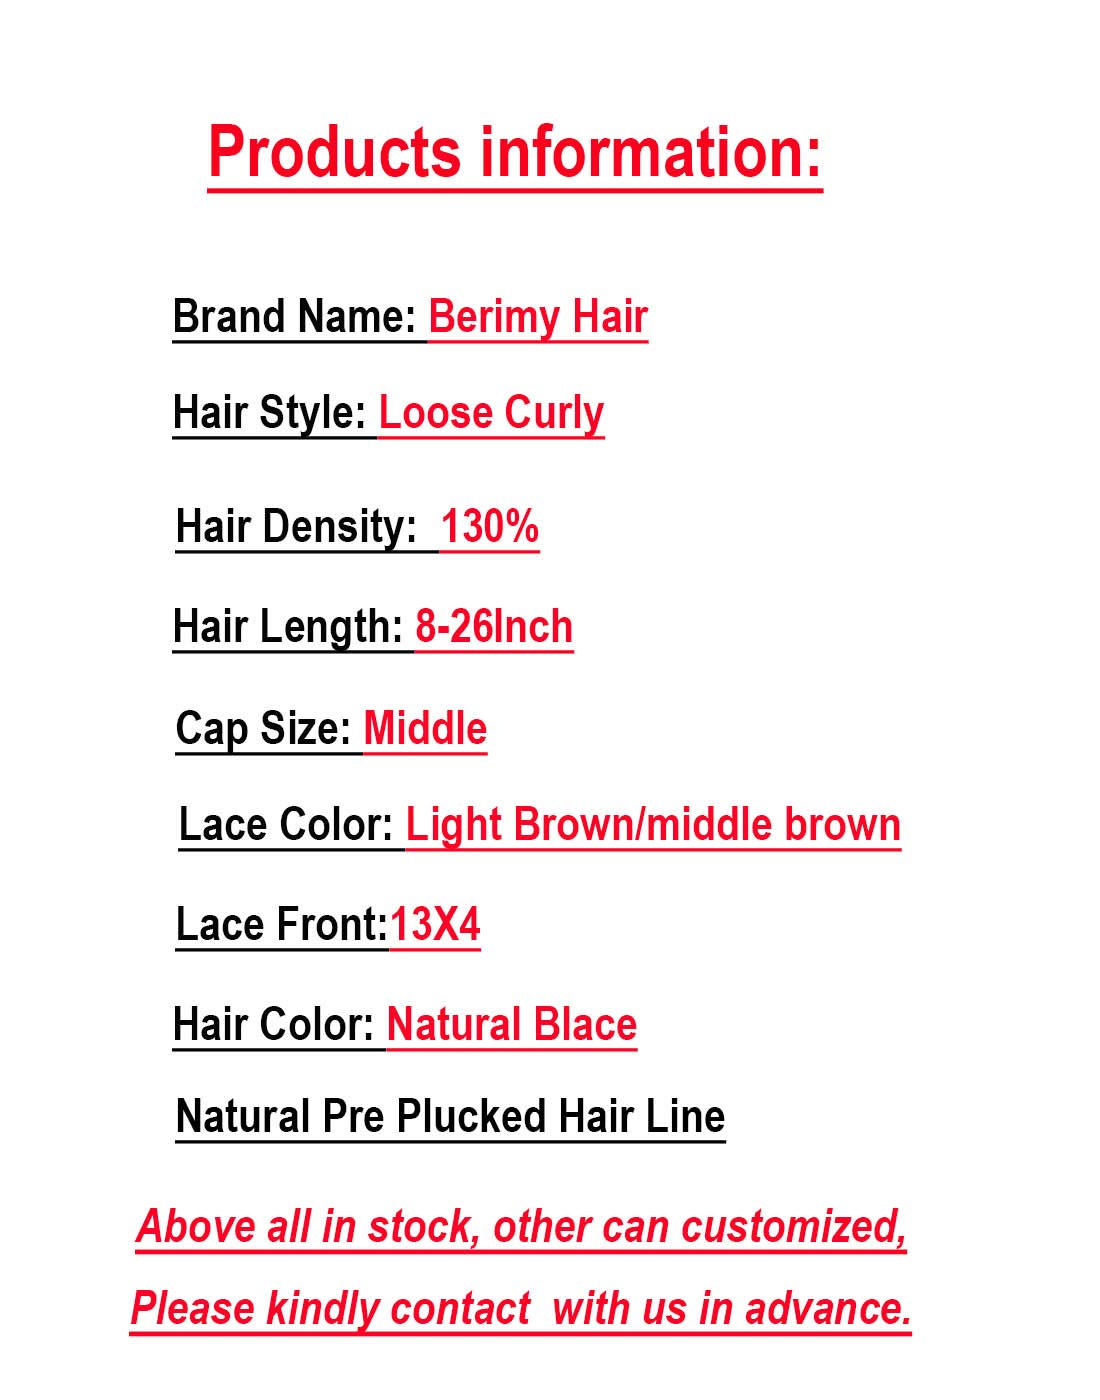 Short Bob Full Lace Human Hair Wigs With Baby Hair For Black Women Pre Plucked Hairline Brazilian Virgin Lace Front Human Hair Wigs 8''-16'' Loose Curly Hair Natural Color (Lace Front Wig 8) by Berimy